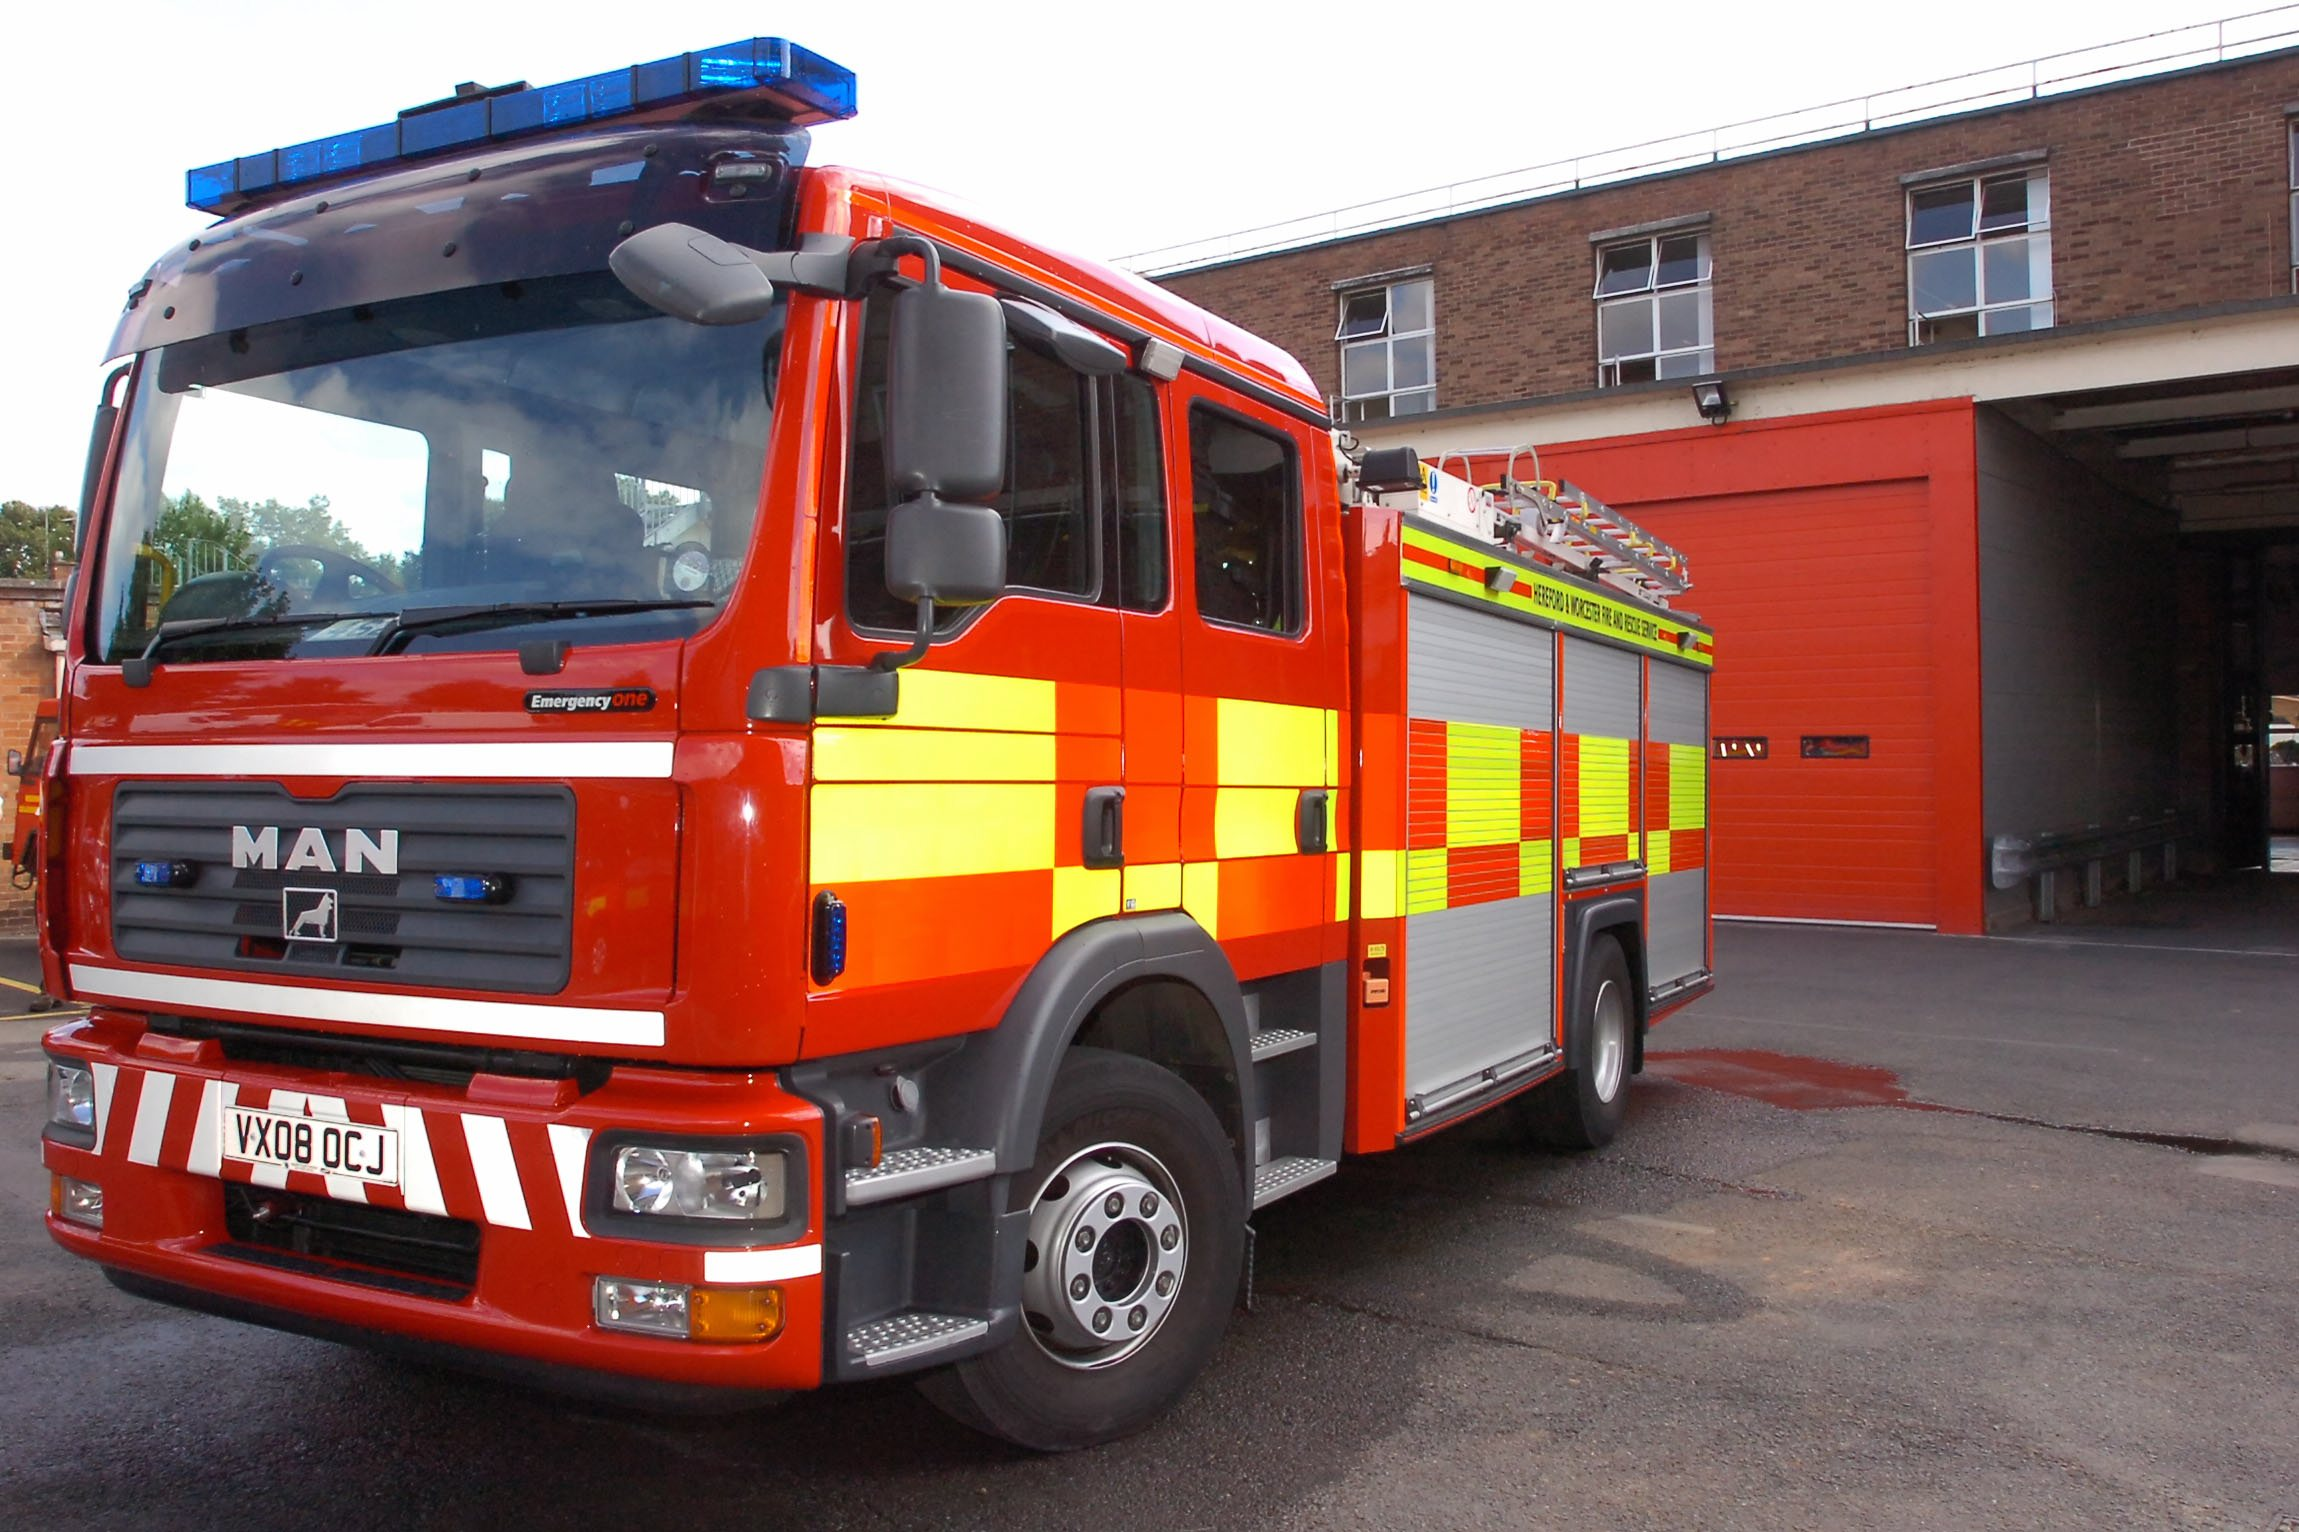 A Hereford fire crew tackled a skip fire at Rotherwas Industrial Estate last night.